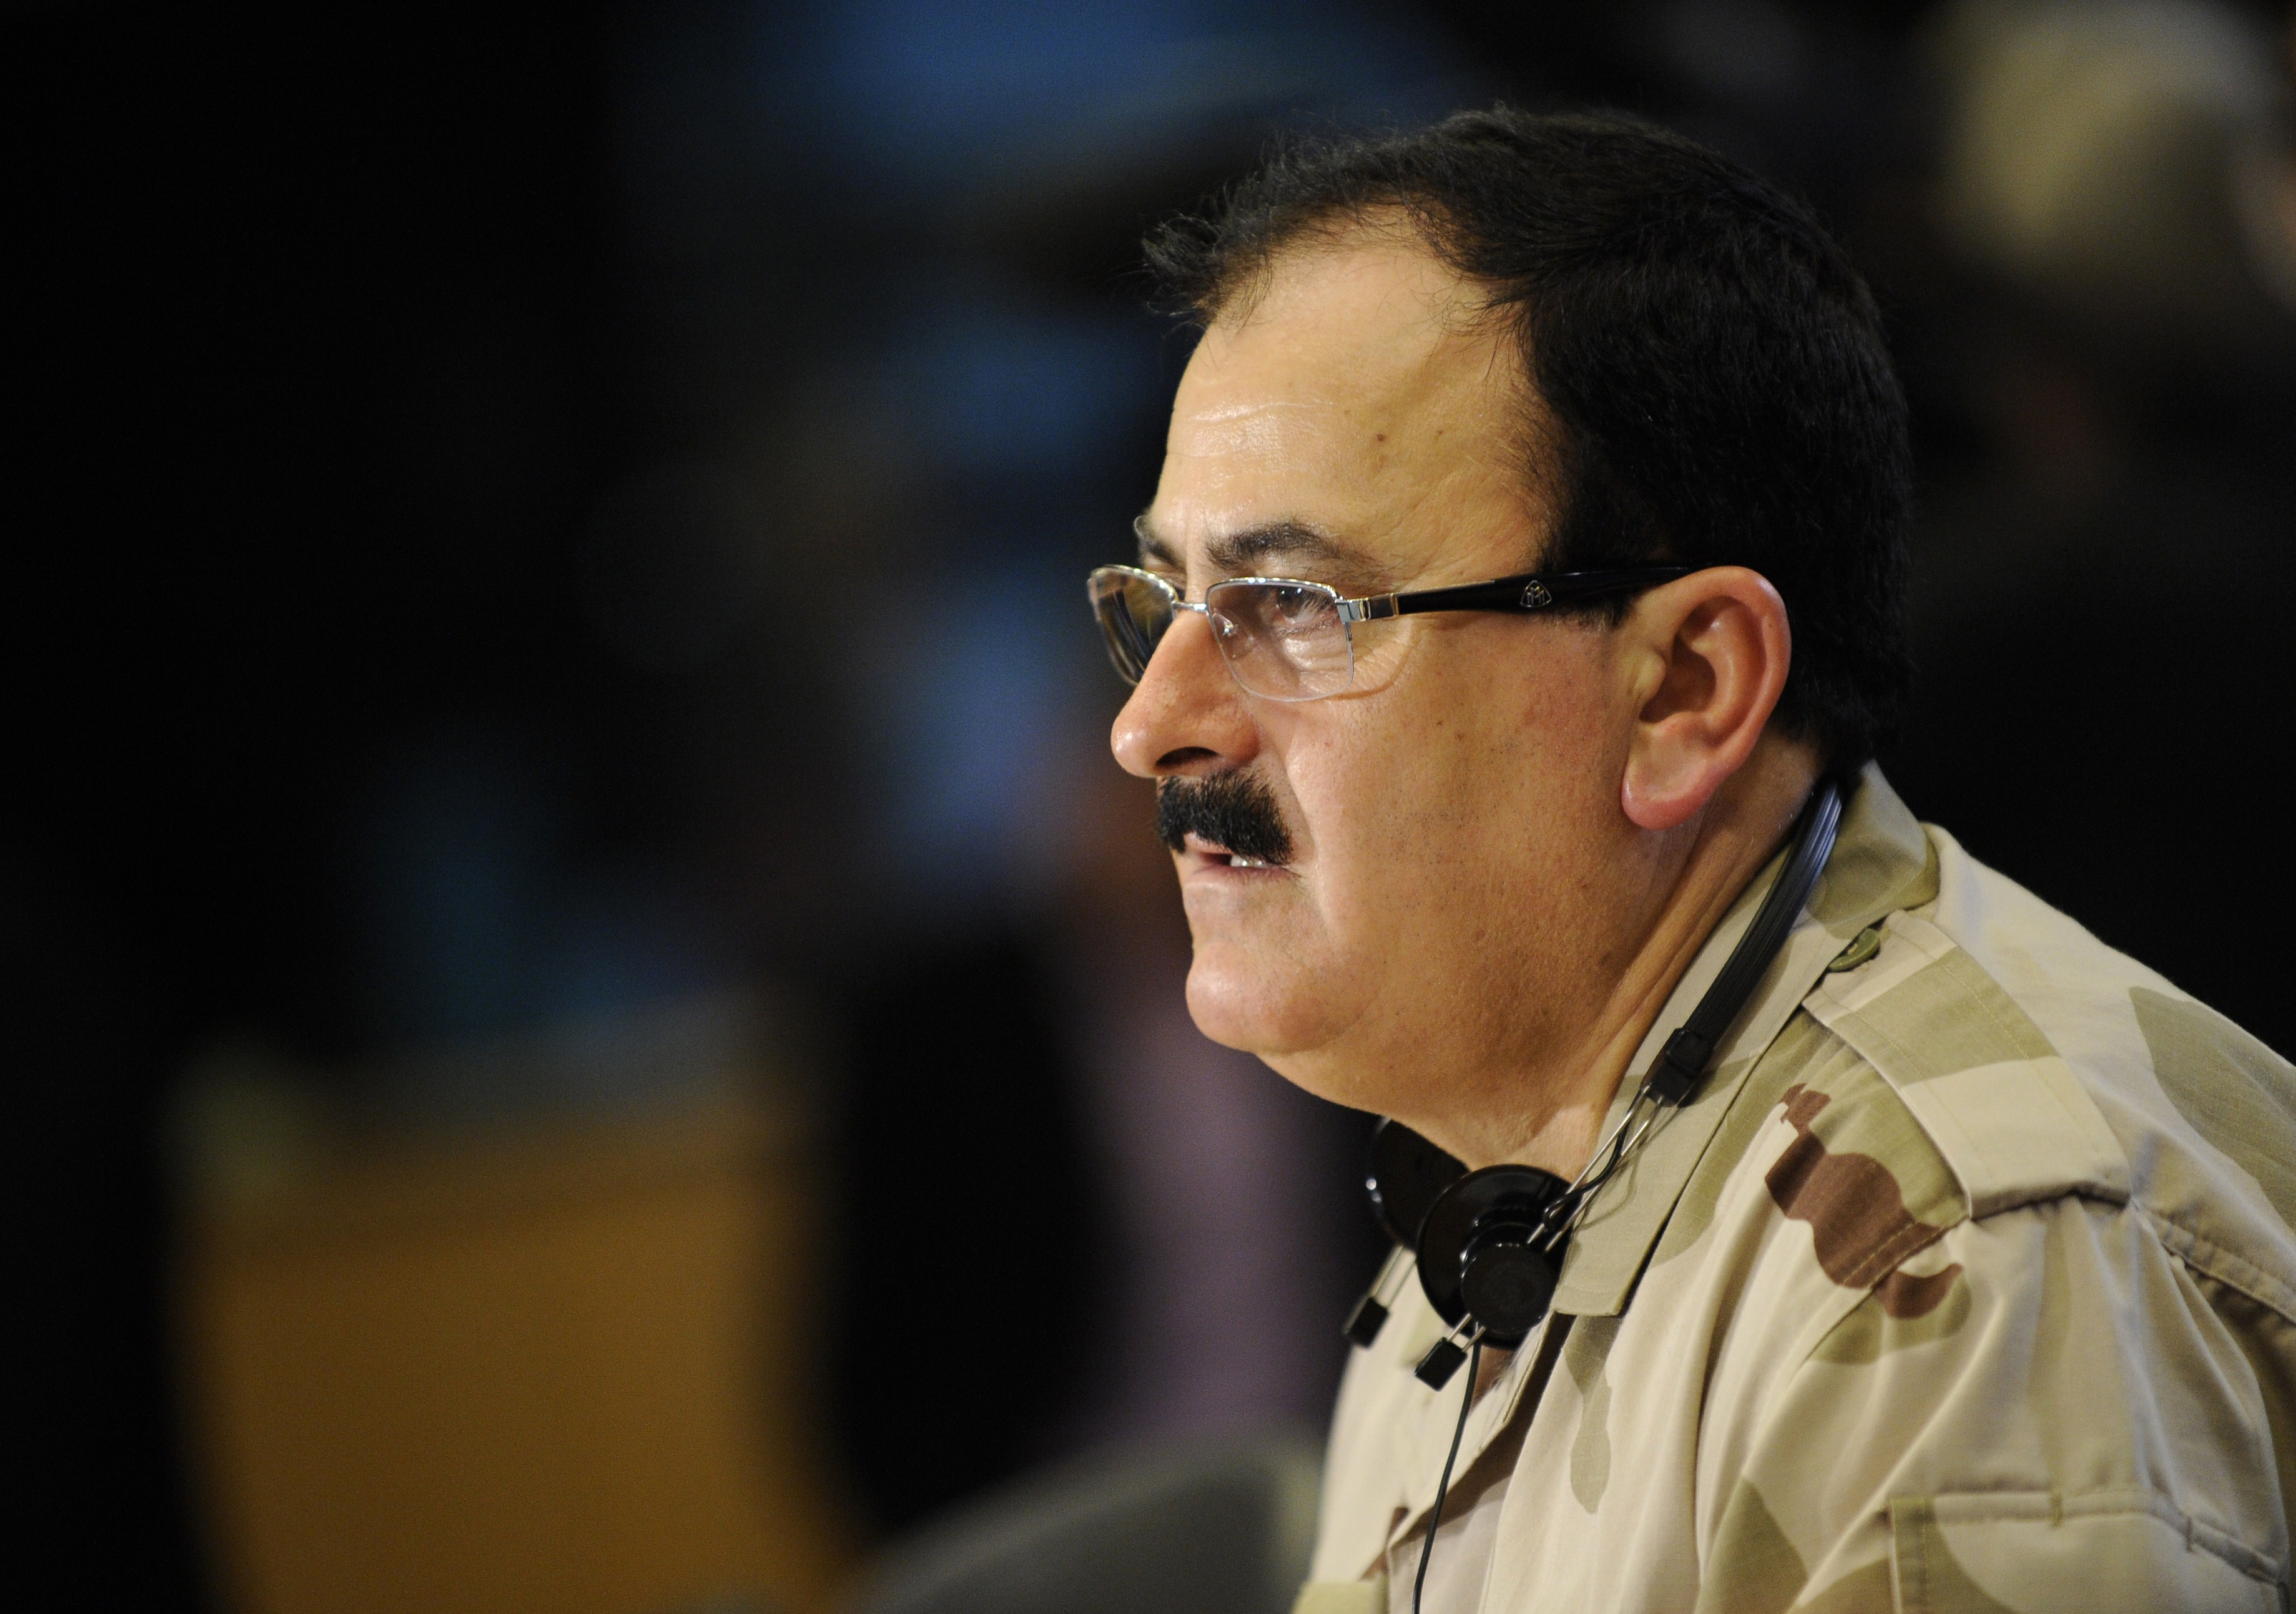 "This photo taken on March 6, 2013, shows chief commander of the Free Syrian Army Brigadier General Selim Idriss speaking during a press confrence at the European Union Parliament in Brussels. The Free Syrian Army announced on February 16, 2014, it had fired Selim Idriss as its military chief and appointed Abdel al-Ilah al-Bachir to replace him. In a video broadcast on the Internet, the rebel coalition said its military council had decided to replace Idriss because of ""the difficulties faced by the Syrian revolution"" in its battle with President Bashar al-Assad's regime.   (AFP PHOTO / JOHN THYS)"